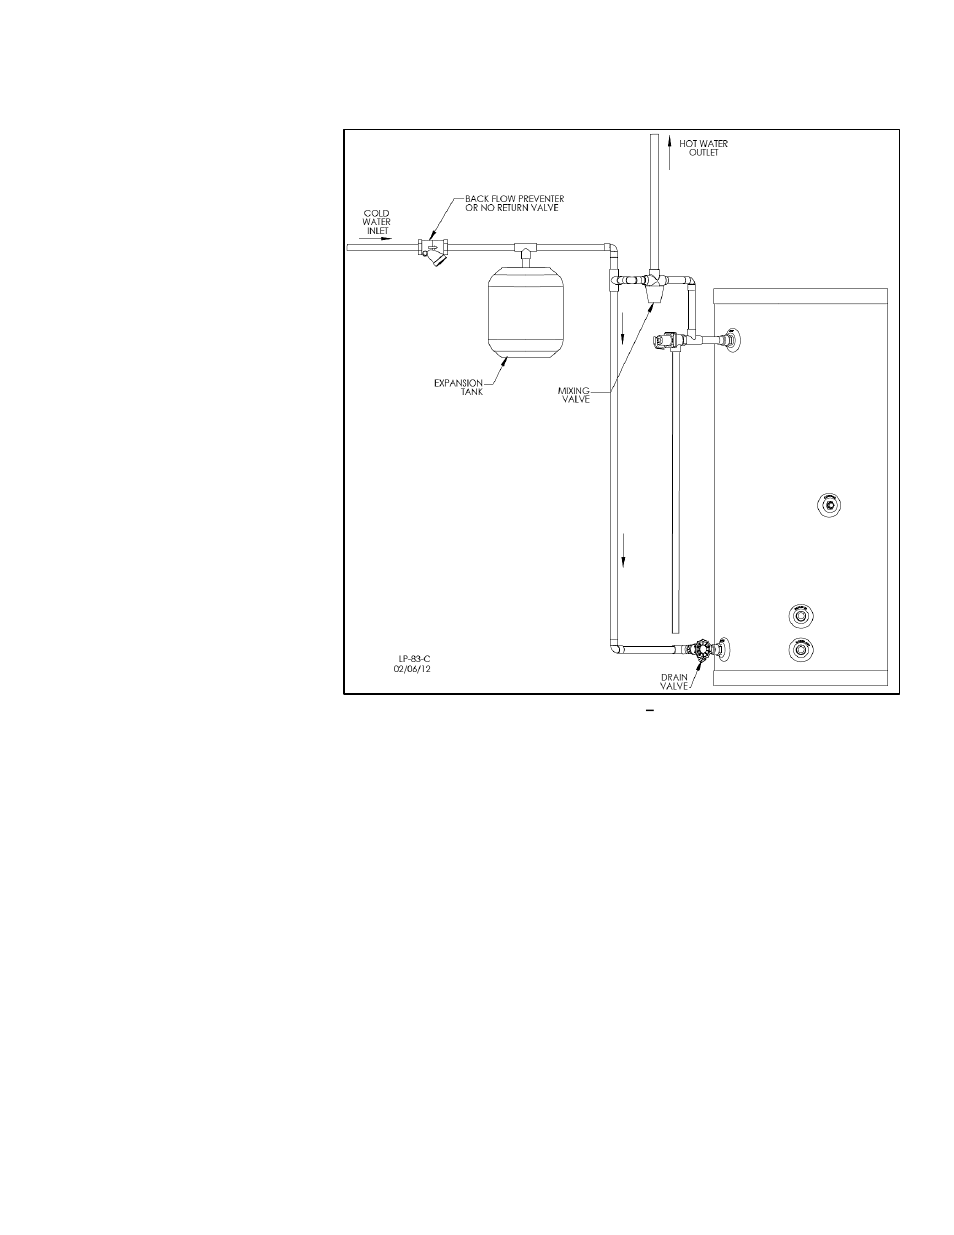 HTP SuperStor Ultra Indirect Fired Water Heaters User Manual | Page on livestock water heater, under counter water heater, portable water heater, coil water heater, submersible water heater, off-grid water heater, hybrid water heater, electric water heater, tankless gas water heater, solar water heater, heating water heater,